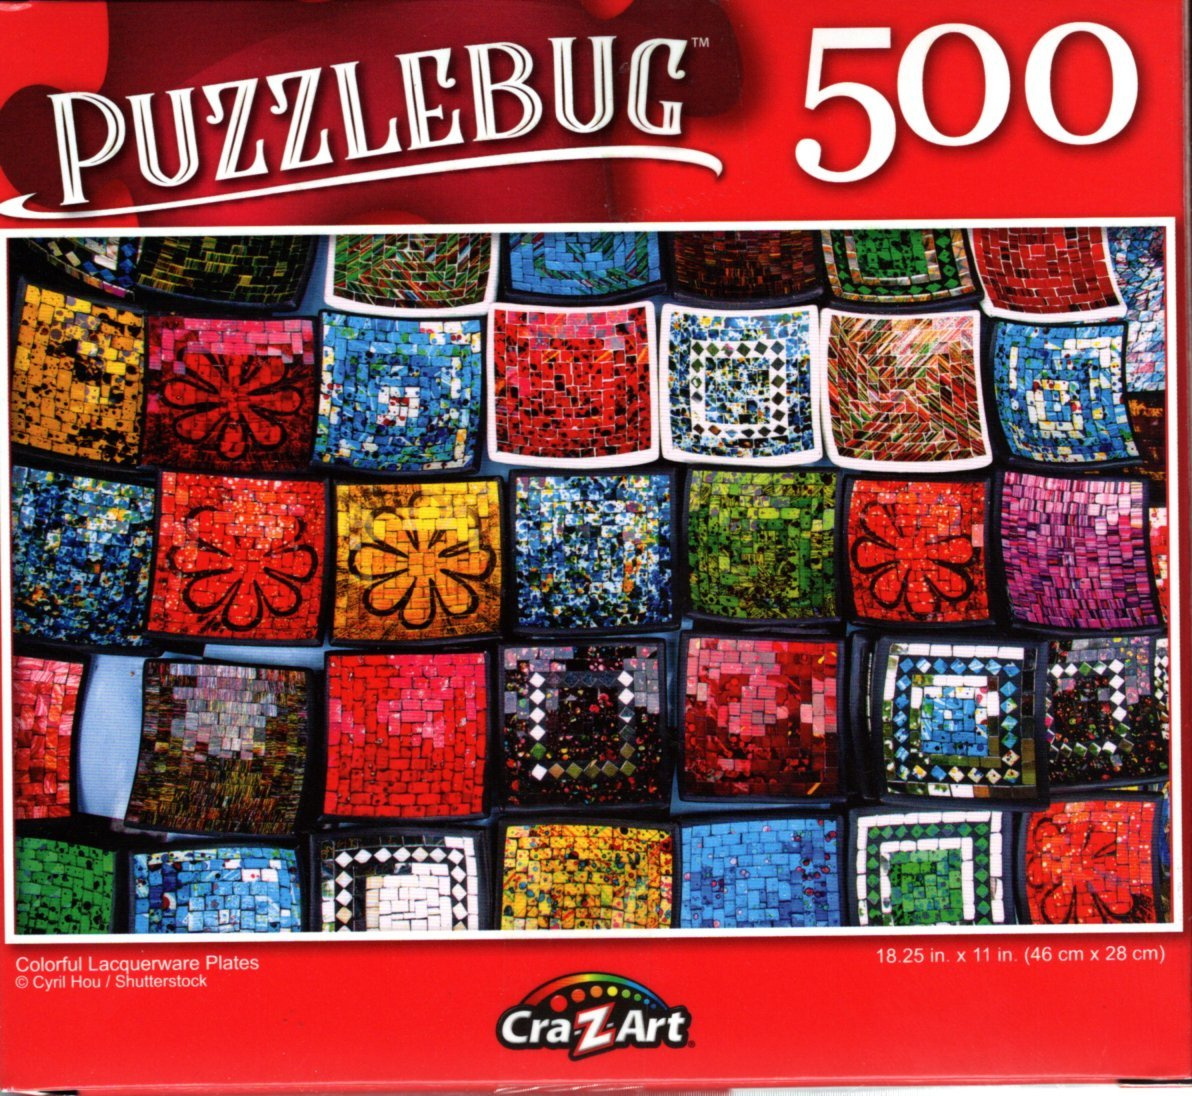 Colorful Lacquerware Plates - 500 Pieces Jigsaw Puzzle